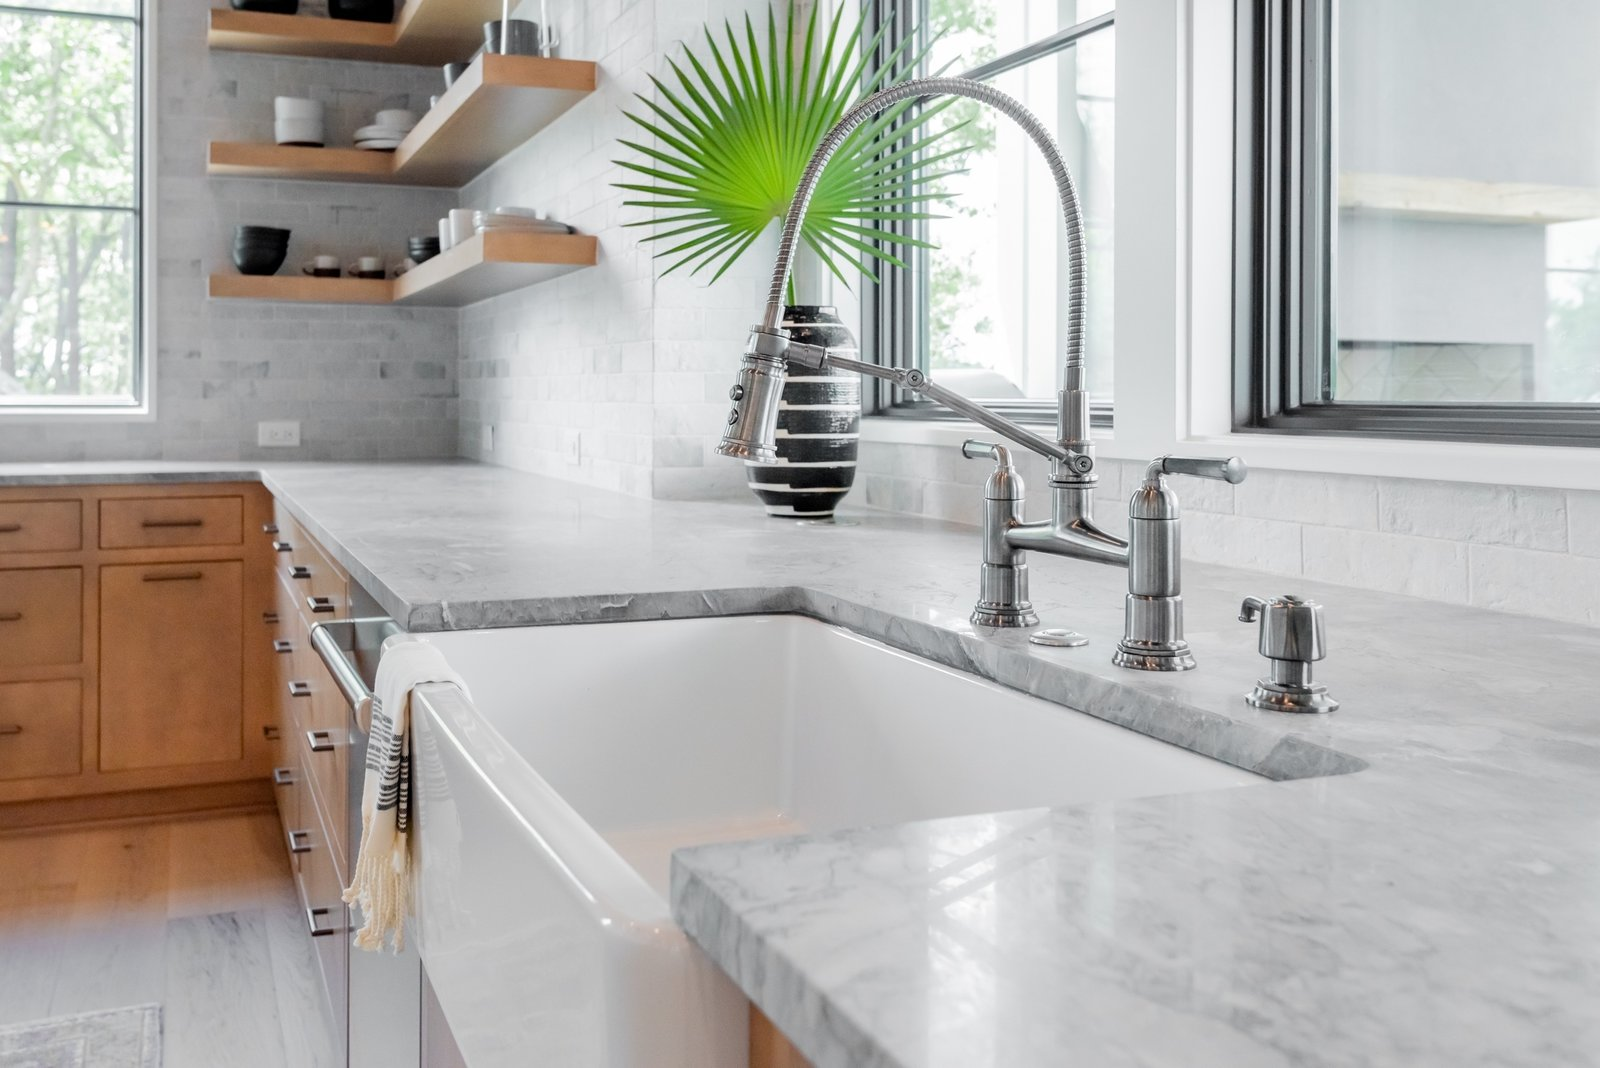 Kitchen, Medium Hardwood Floor, Undermount Sink, Wood Cabinet, Stone Tile Backsplashe, and Marble Counter A gray marble counter adds texture and visual interest to this kitchen designed by Jesse Vickers.   Photo 5 of 13 in How Much Should You Spend on Kitchen Countertops?